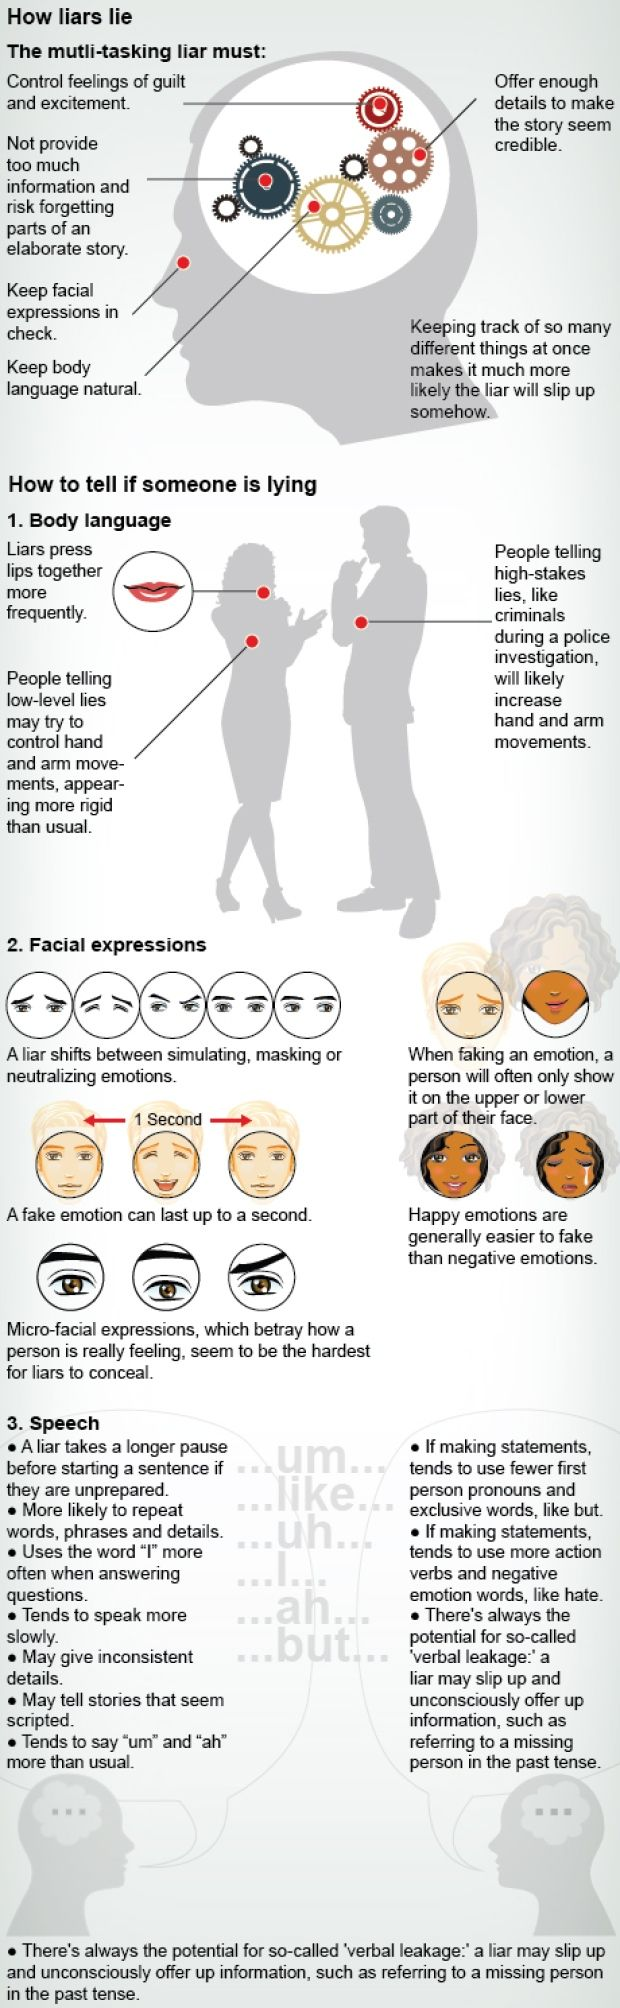 Psychology-Infographic-INFOGRAPHIC-Deception-detection-how-to-tell-if-someone-is-lying-There-is-no-sin Psychology Infographic : How to tell if someone is lying to you